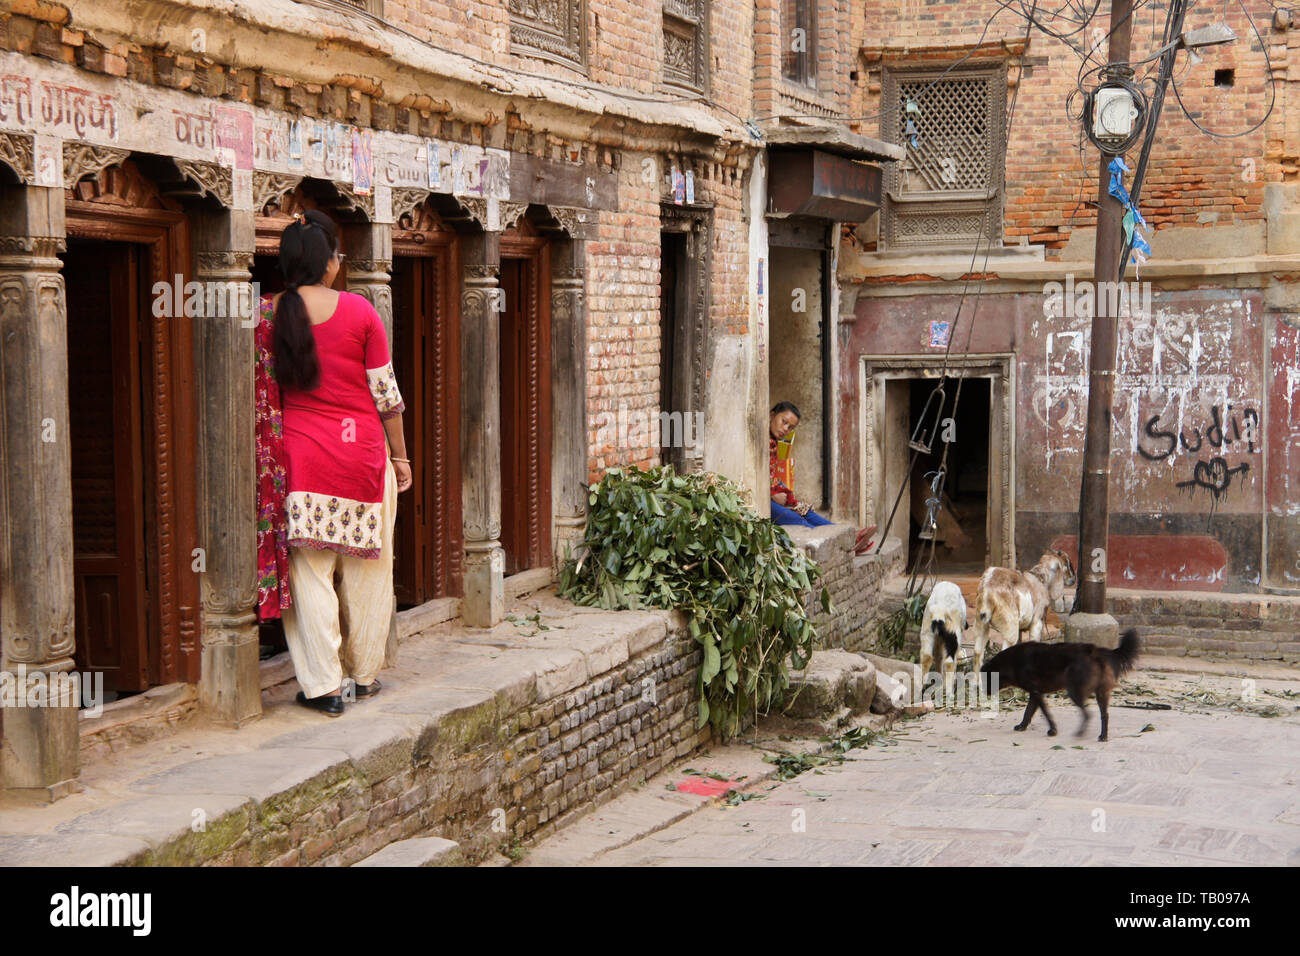 Brick buildings in old town area of Dhulikhel, Nepal, with women, goats, and a dog - Stock Image